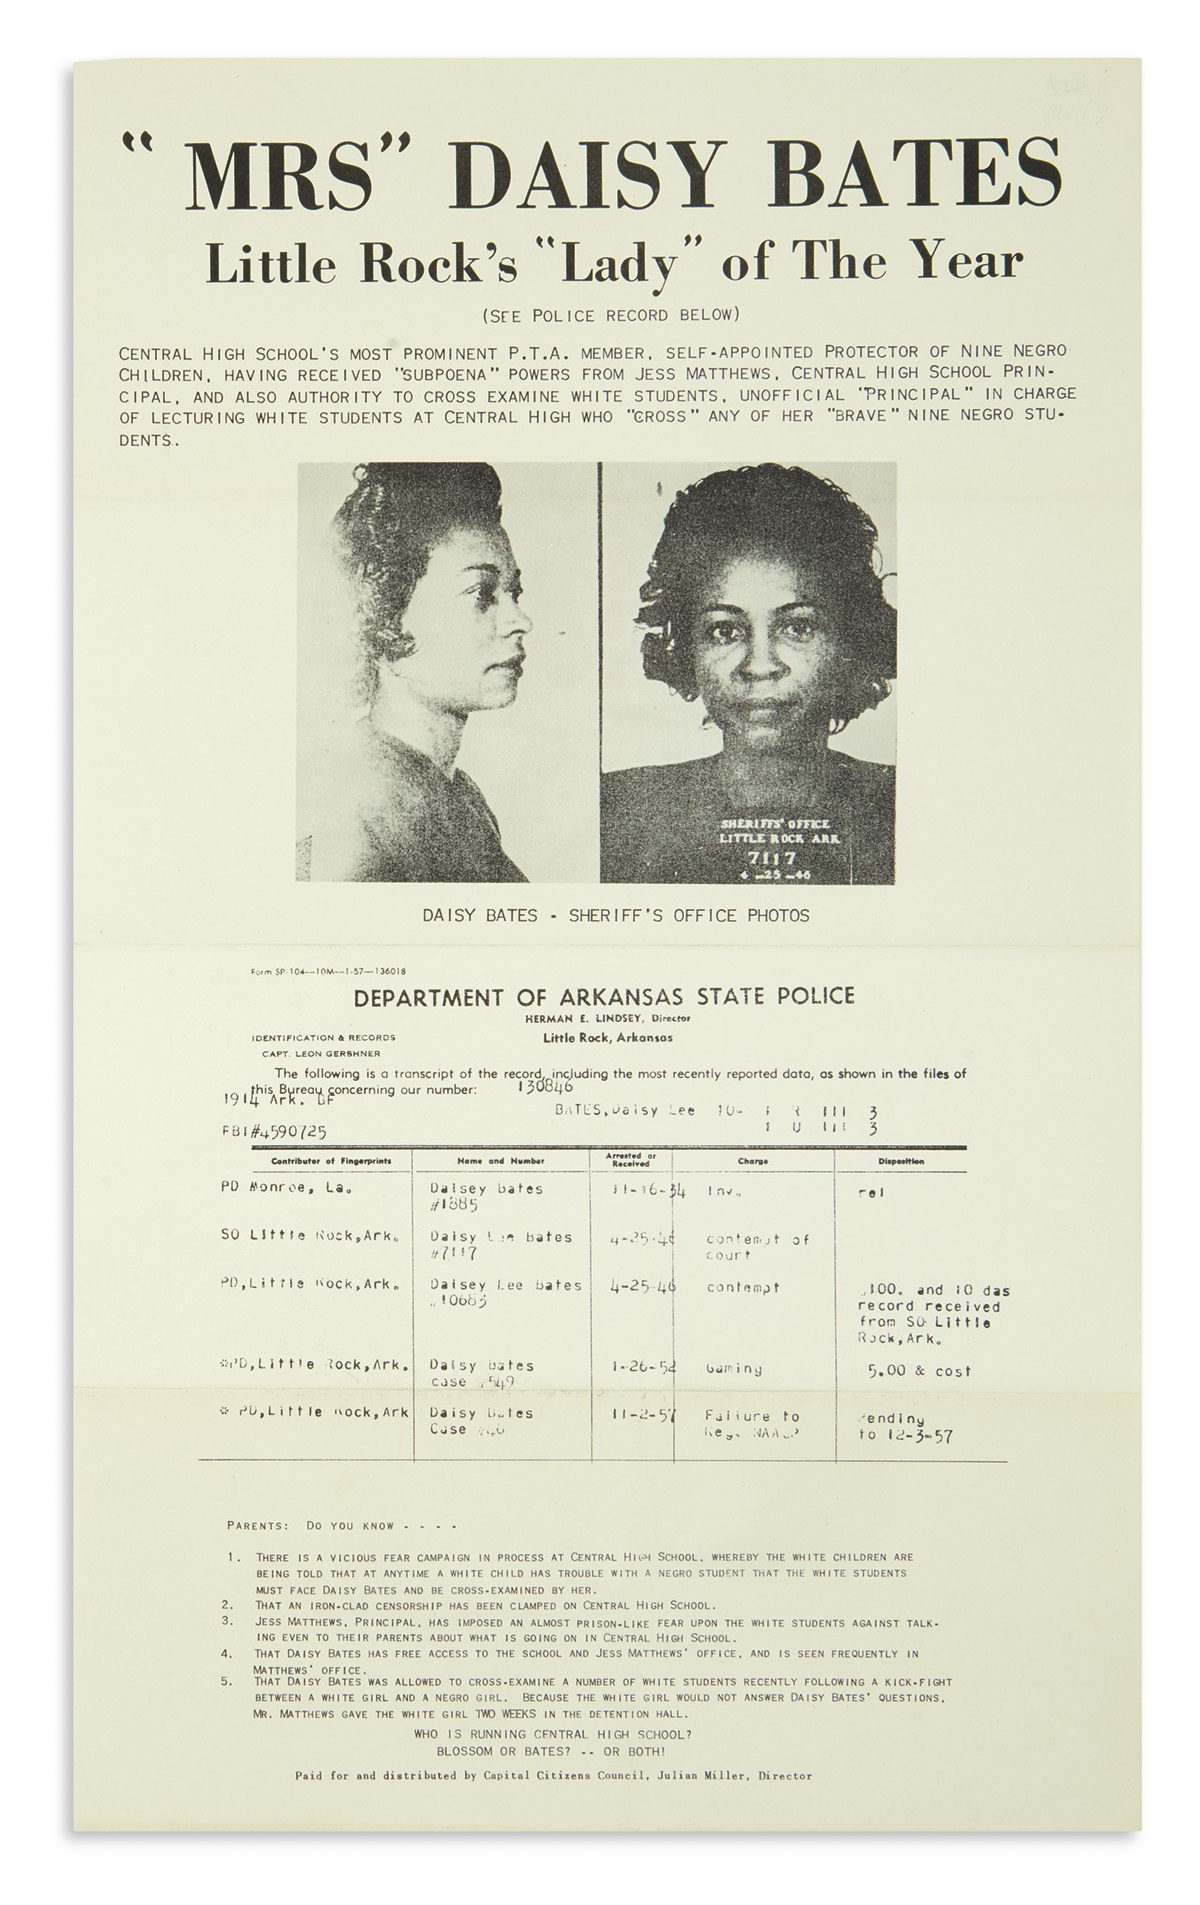 (CIVIL RIGHTS.) Racist flier issued to discredit Daisy Bates, leader of the Little Rock desegregation effort.